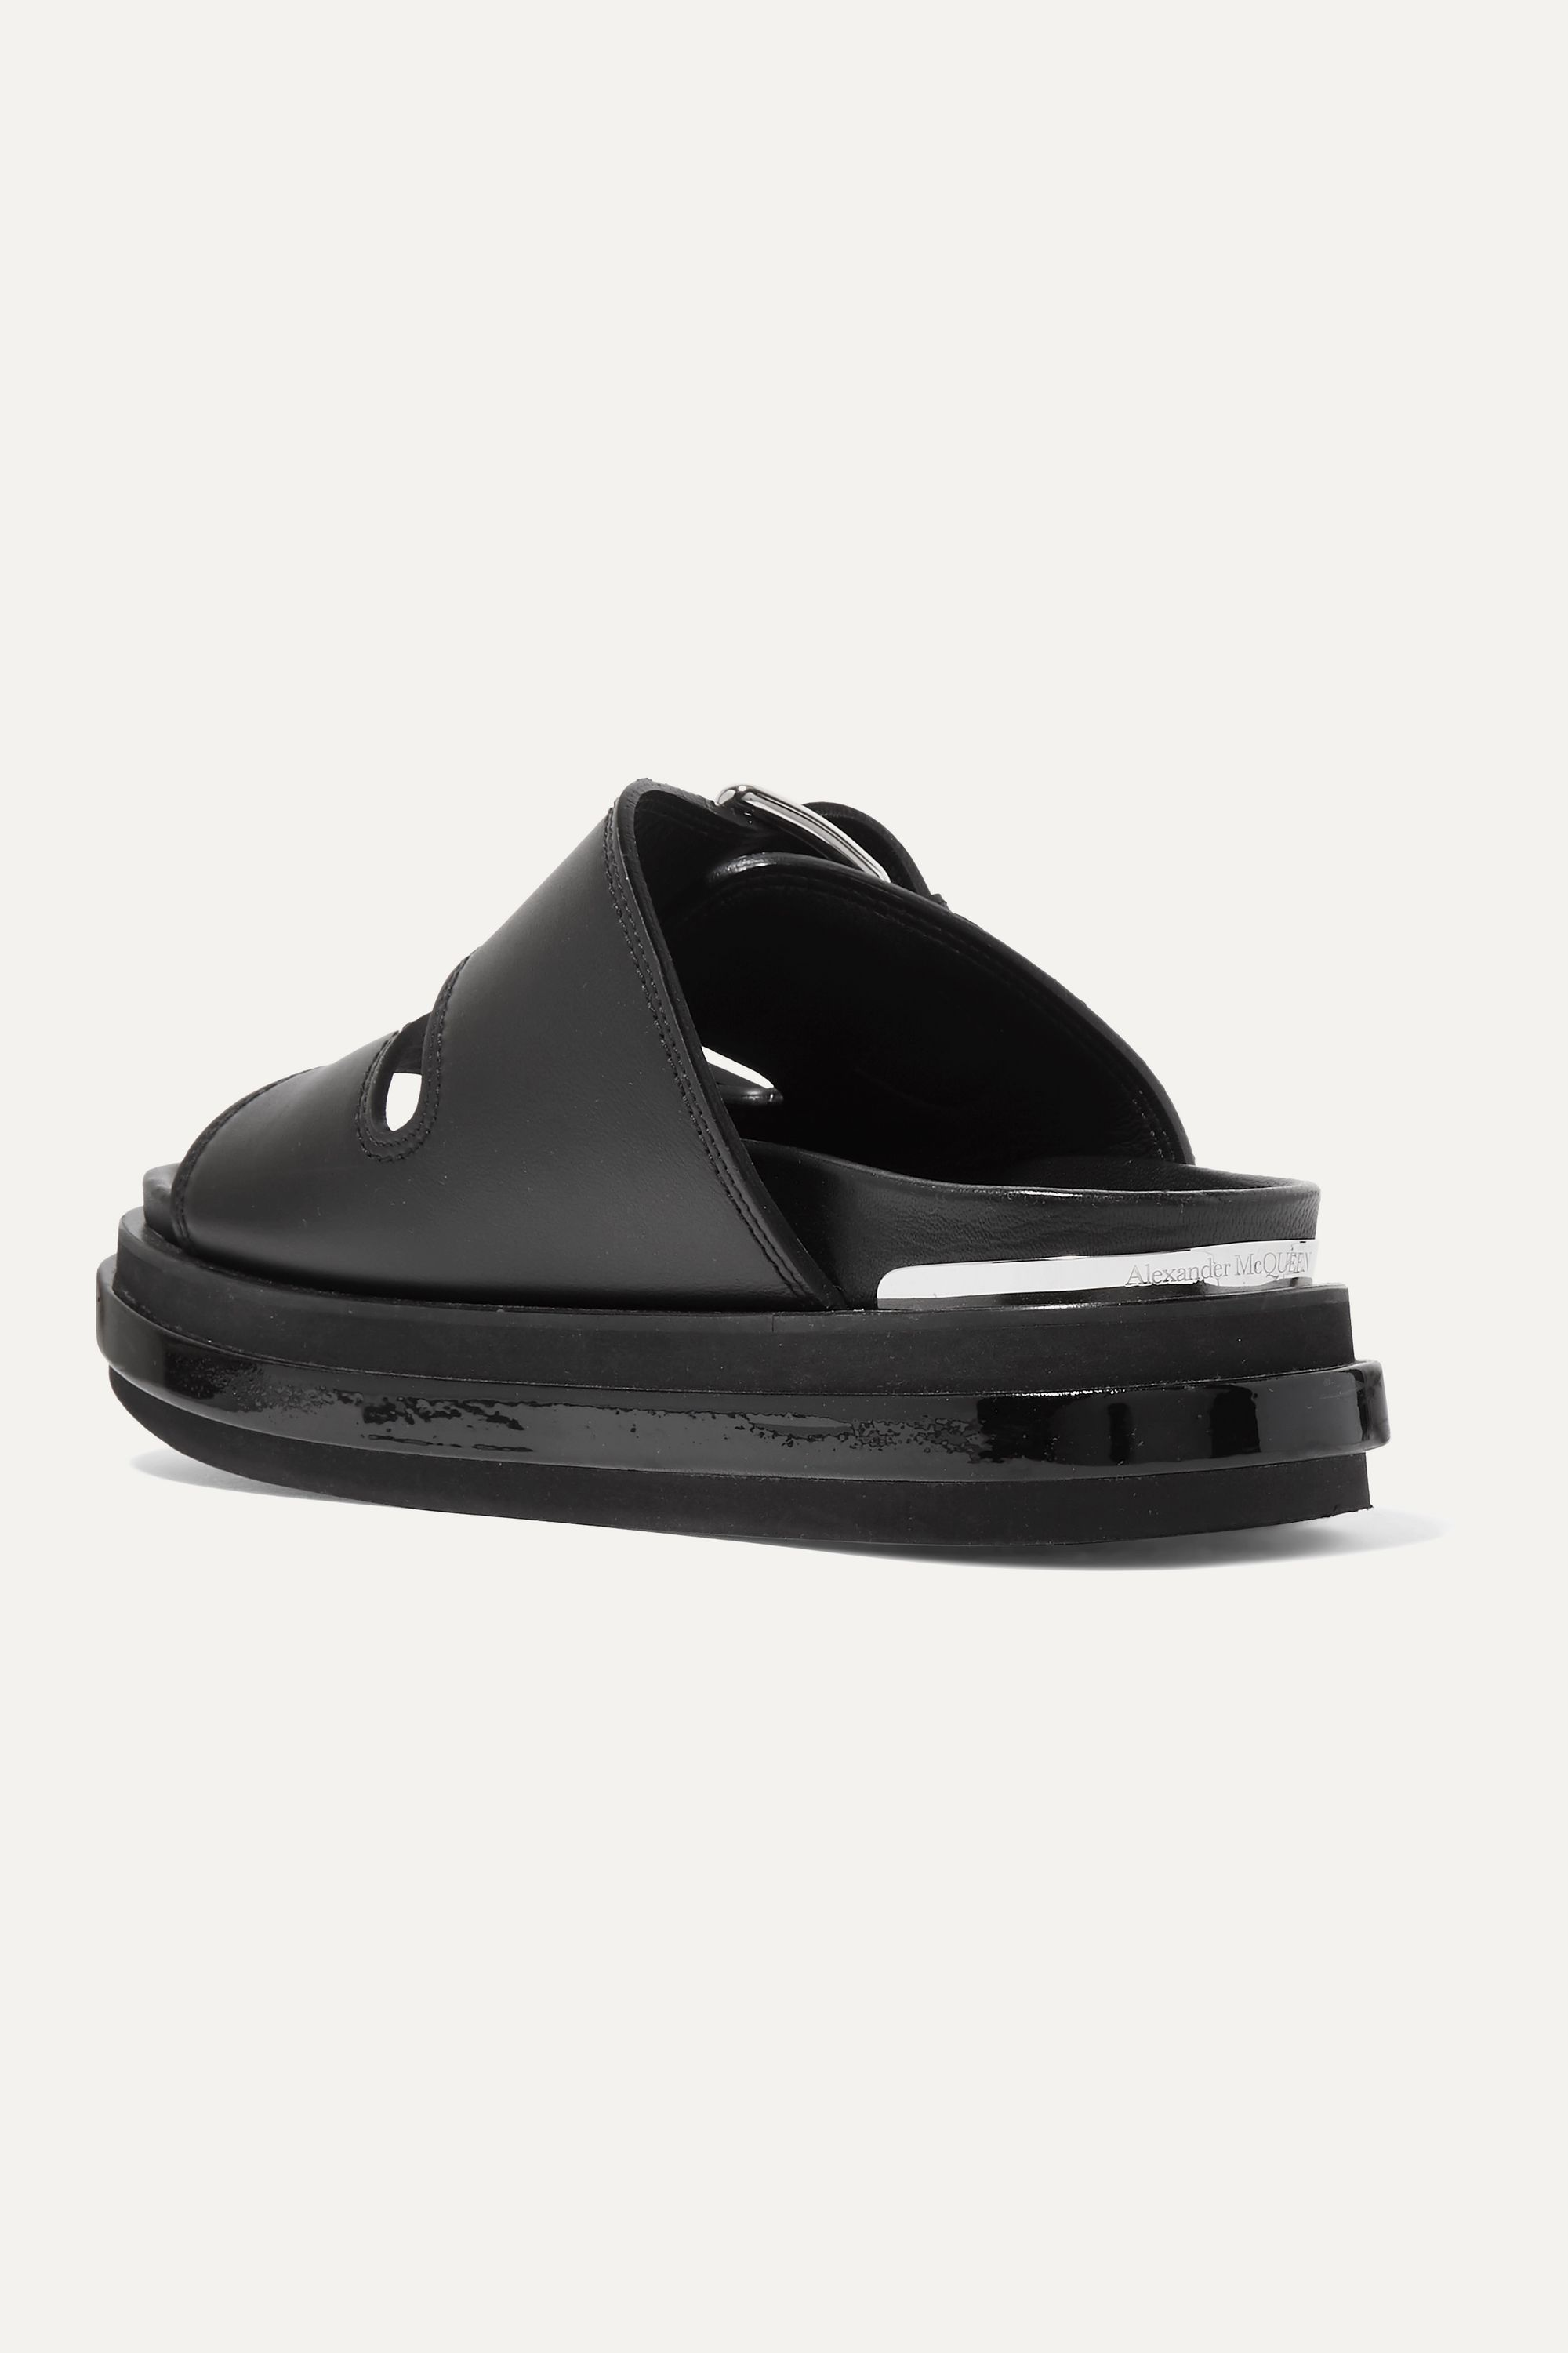 Alexander McQueen Buckled patent-leather trimmed leather platform sandals